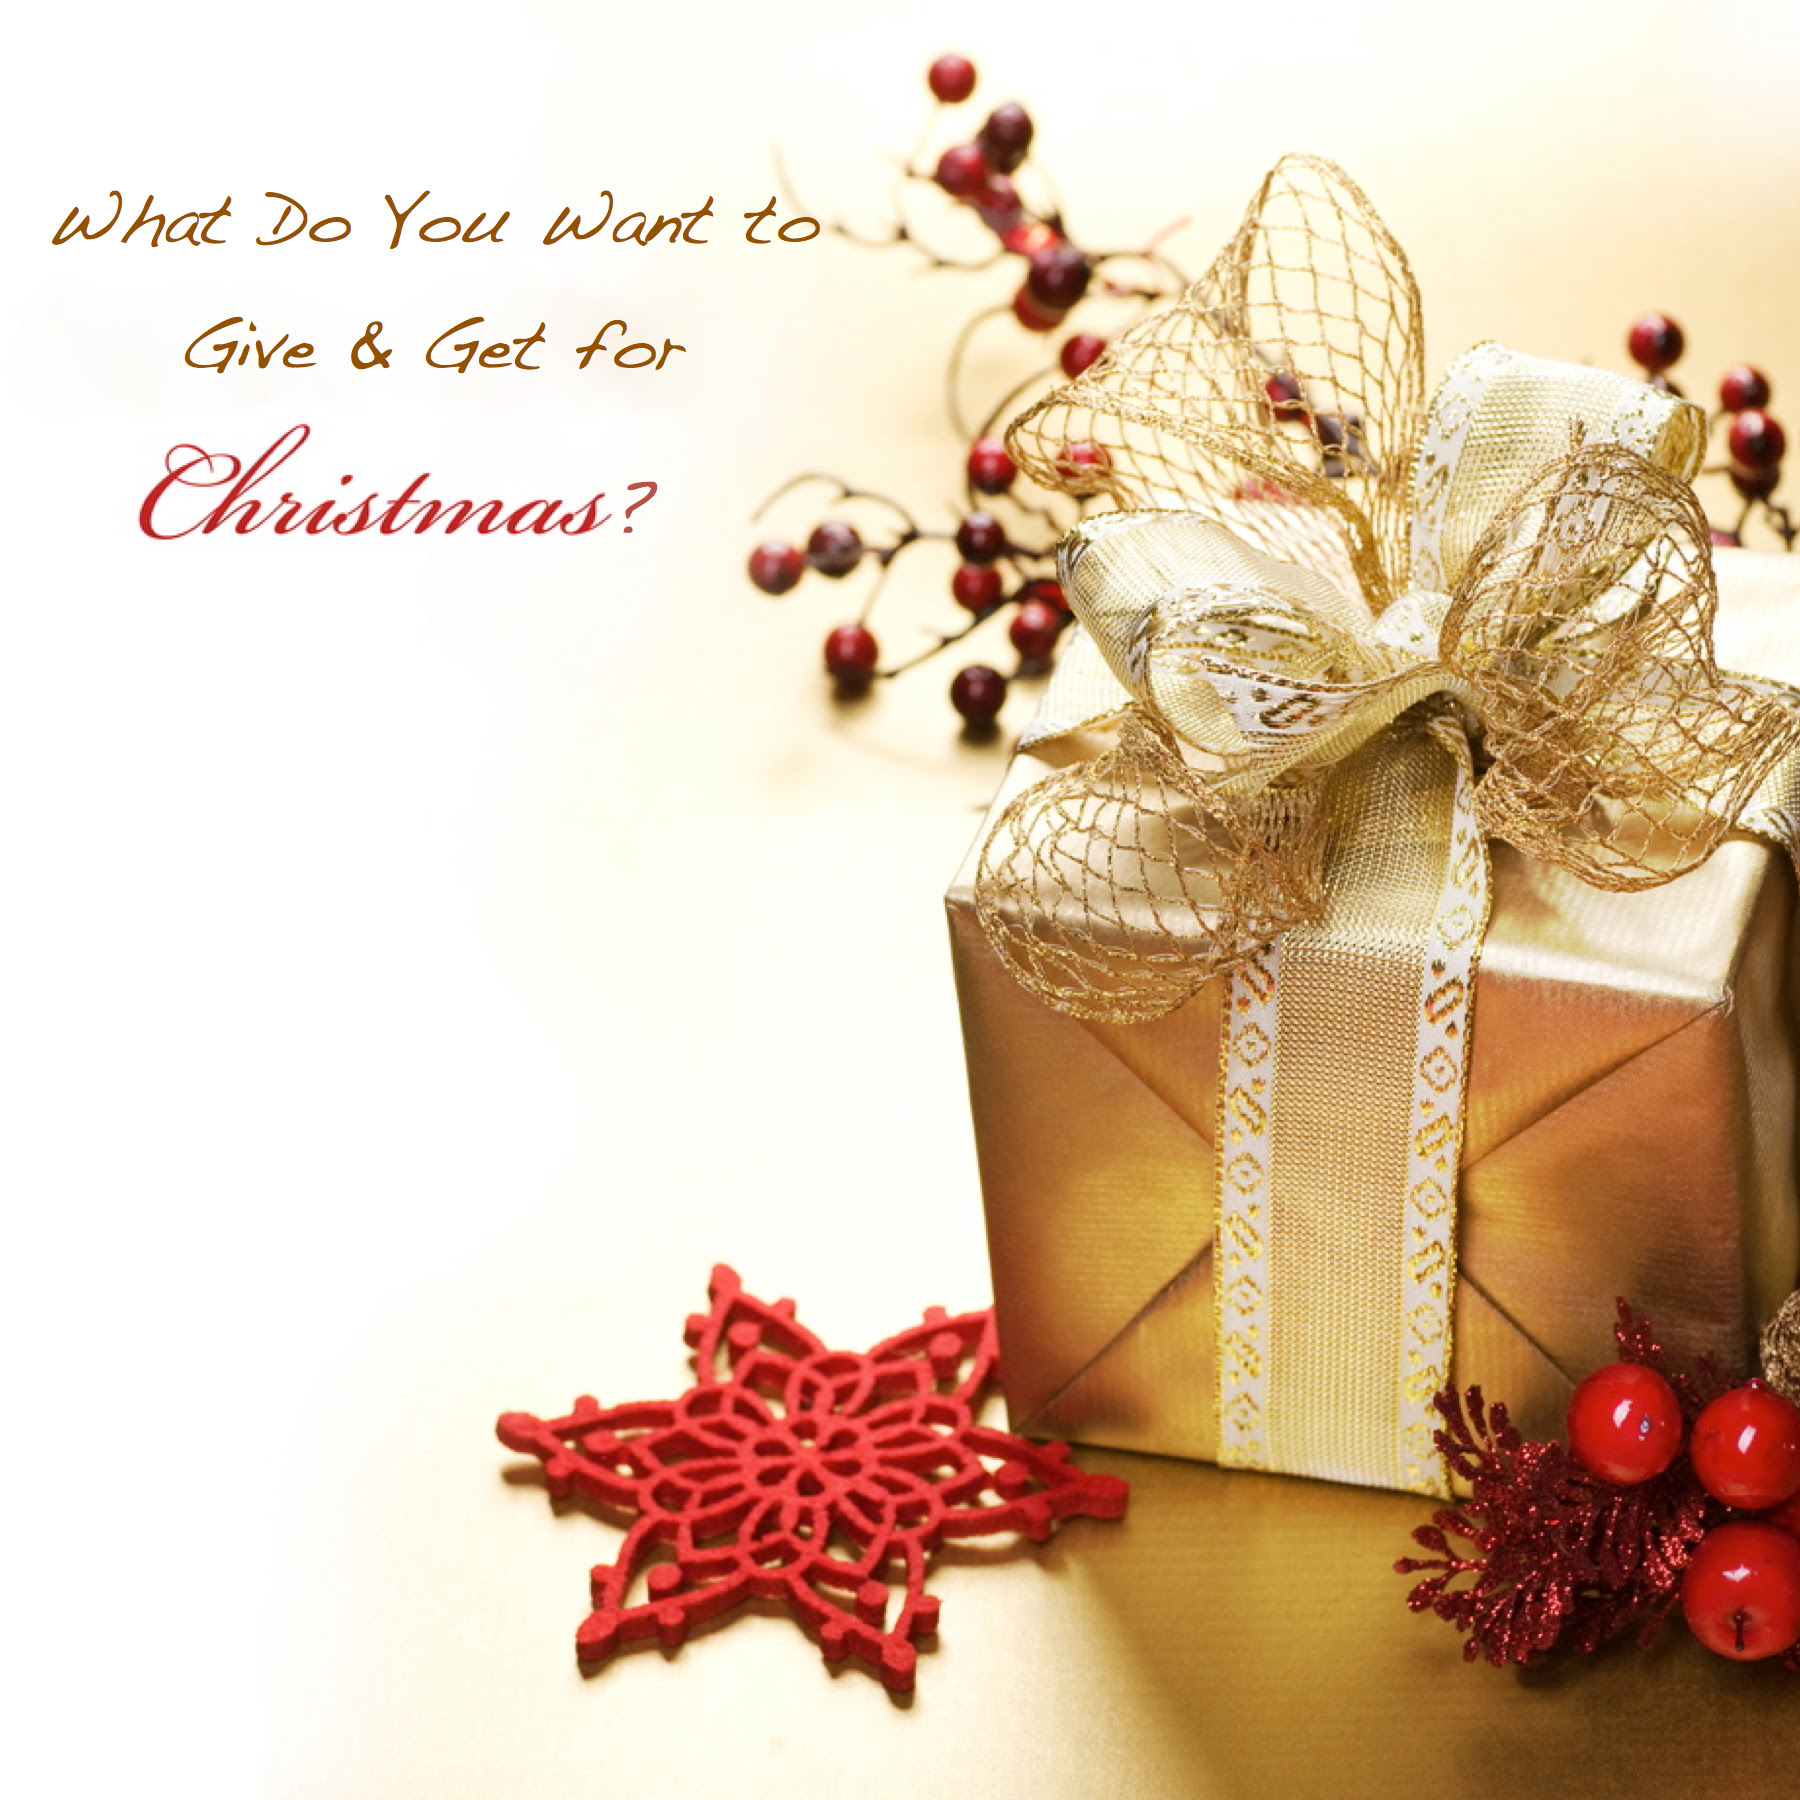 Christmas quotes gift giving ideas christmas decorating proxy negle Gallery